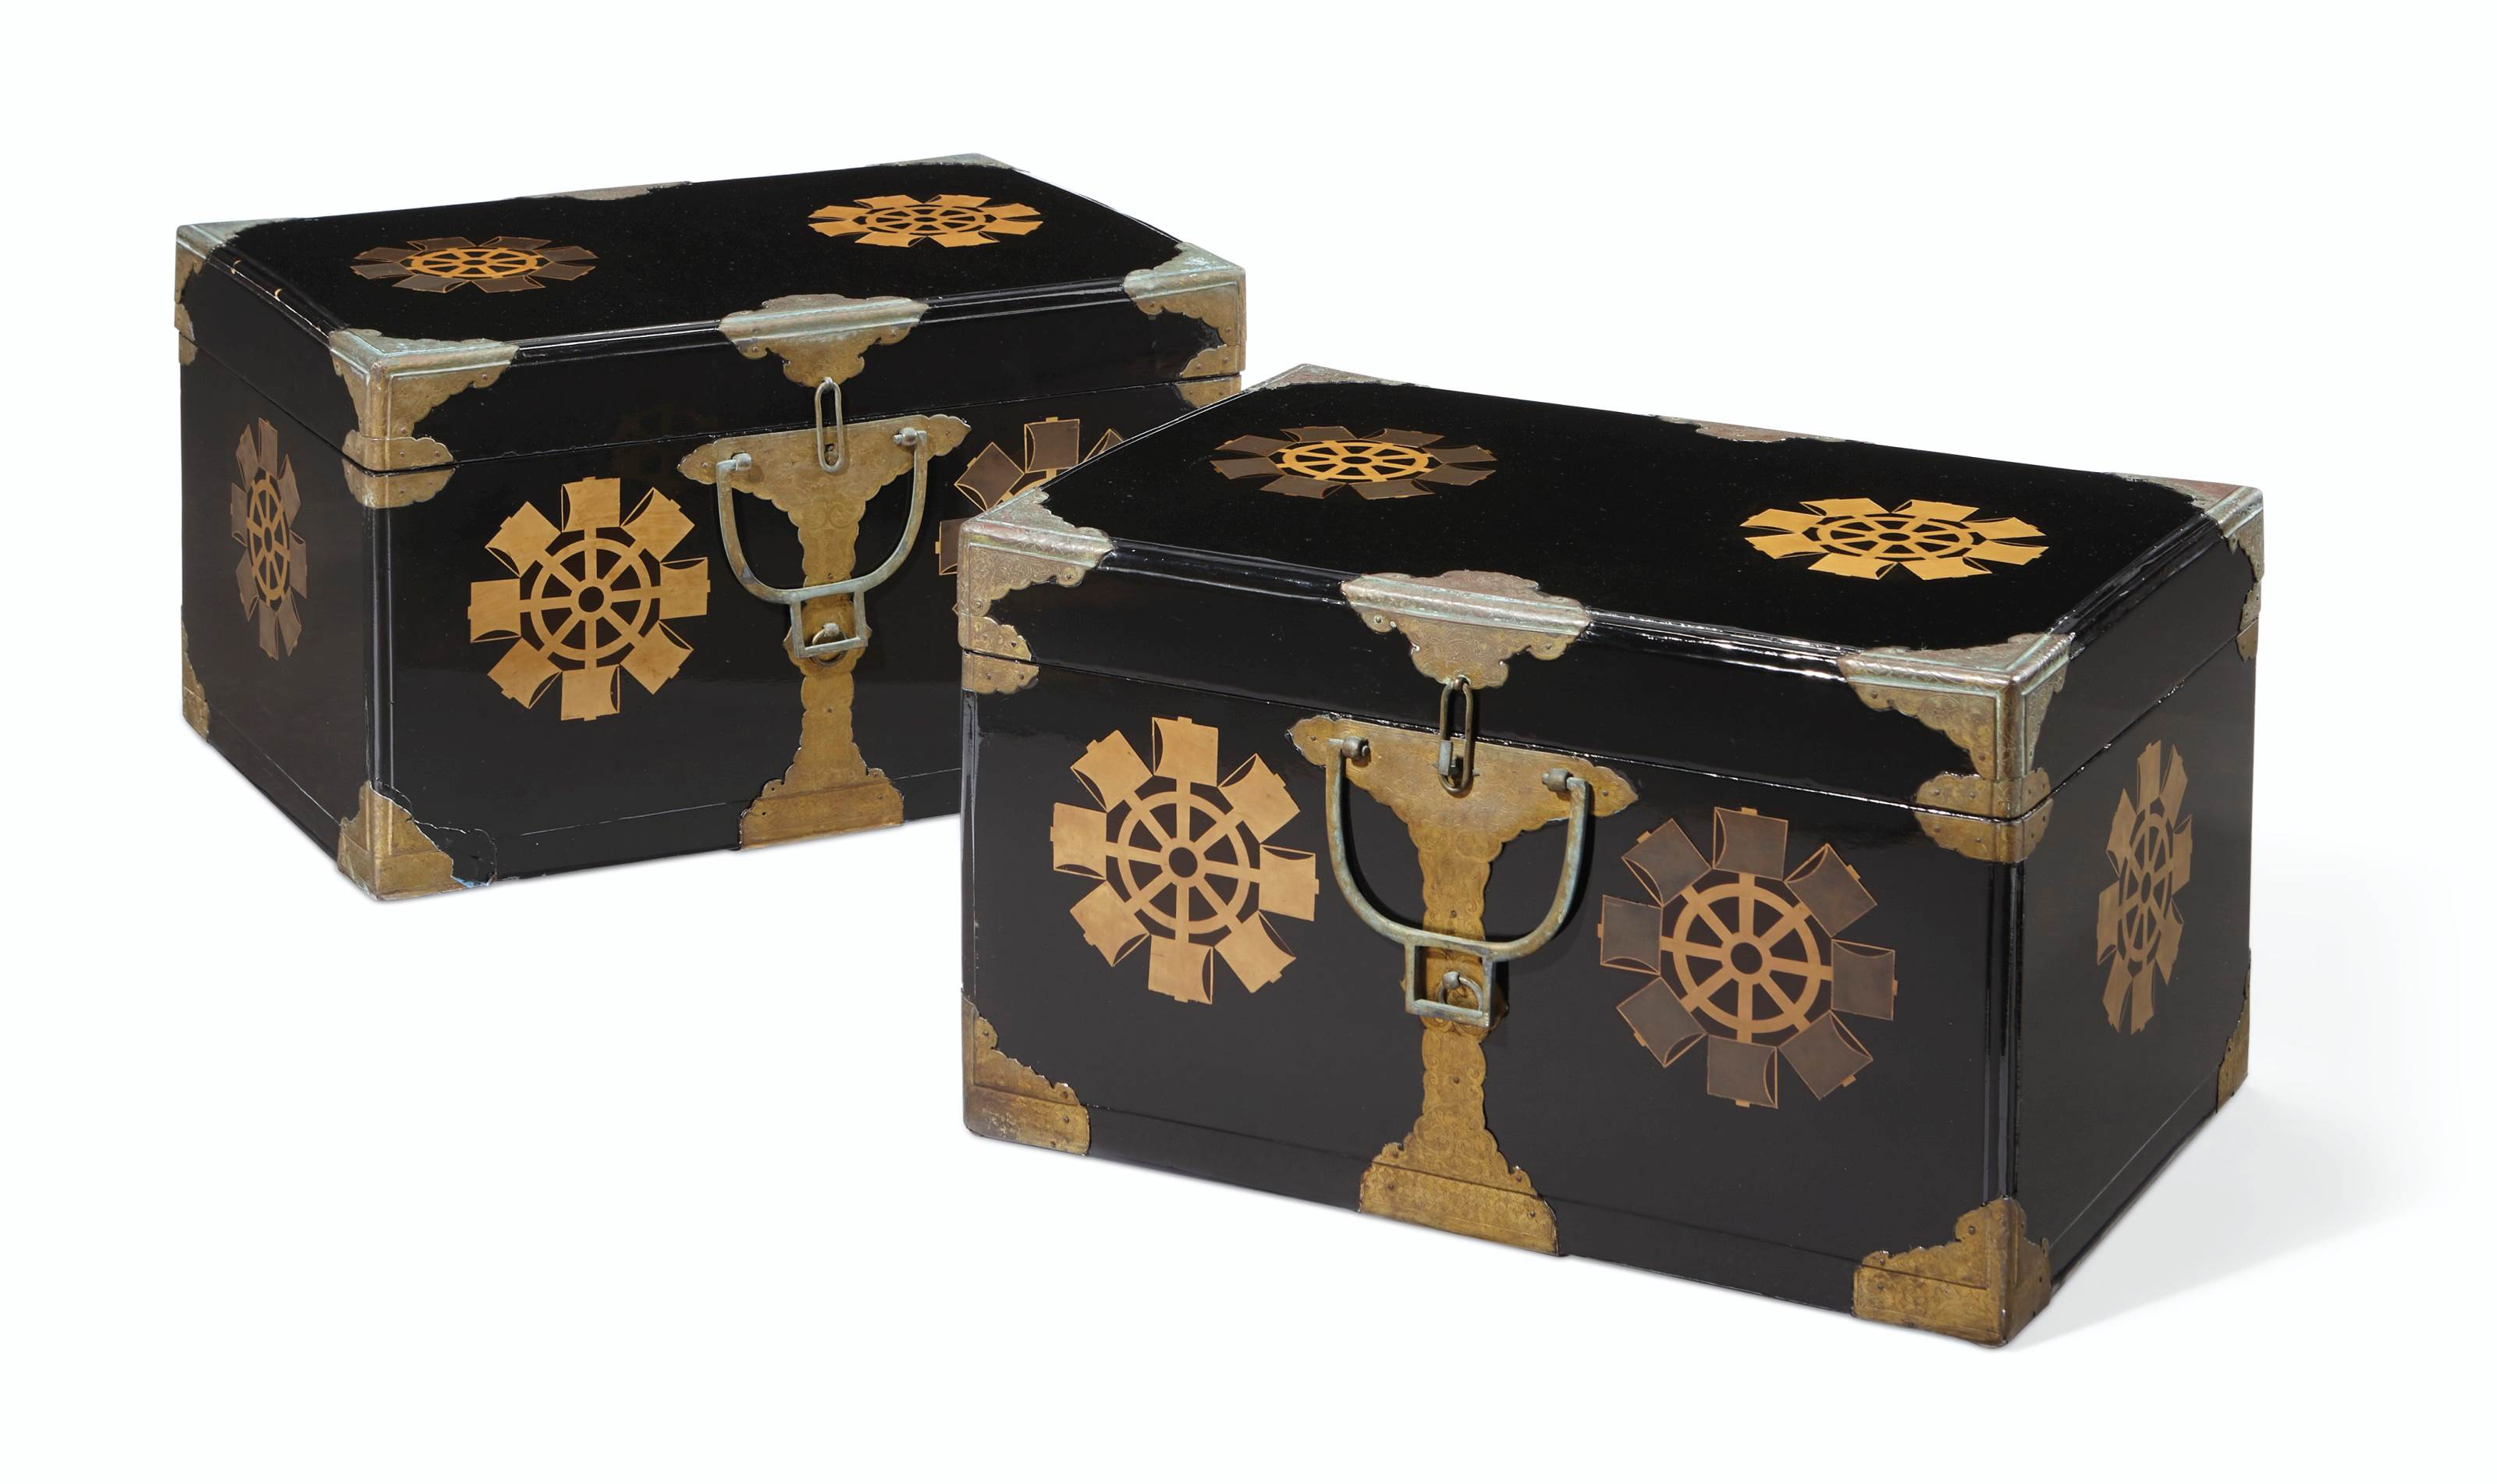 A PAIR OF JAPANESE GILT AND BLACK LACQUER BOXES AND COVERS